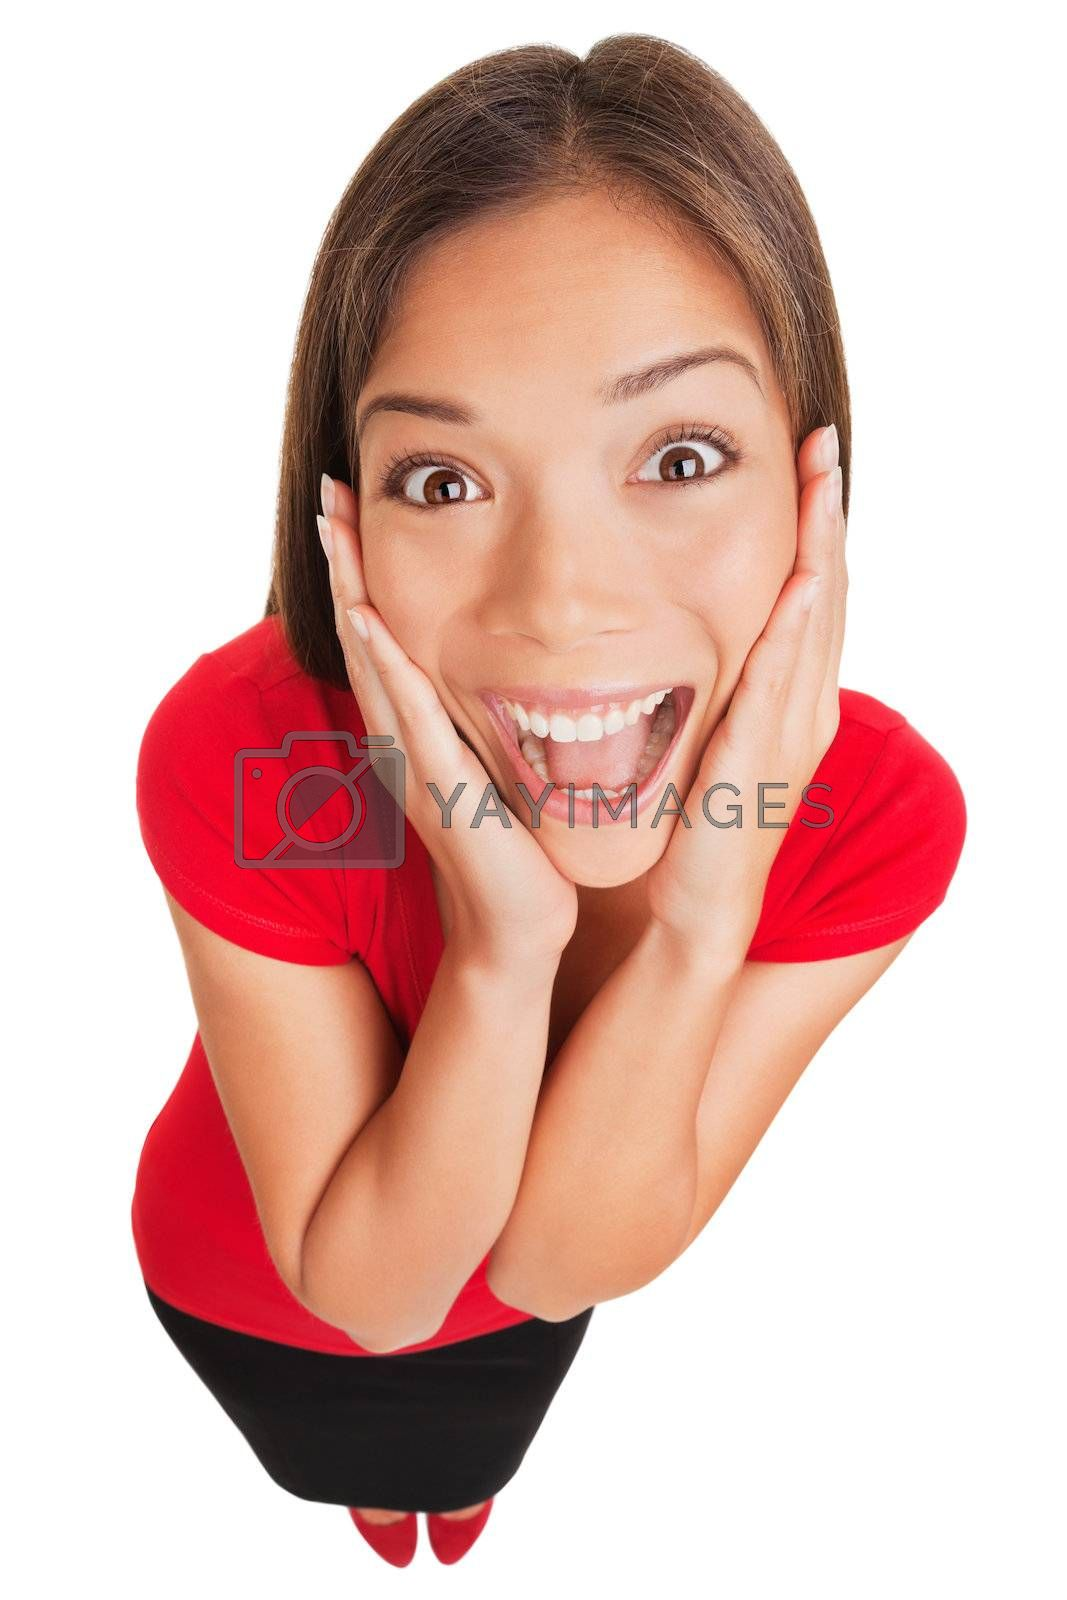 Joyful excited surprised young woman. Beautiful business woman holding her hands to her cheeks smiling up at the camera in pleasure, fun full body high angle portrait isolated on white background.